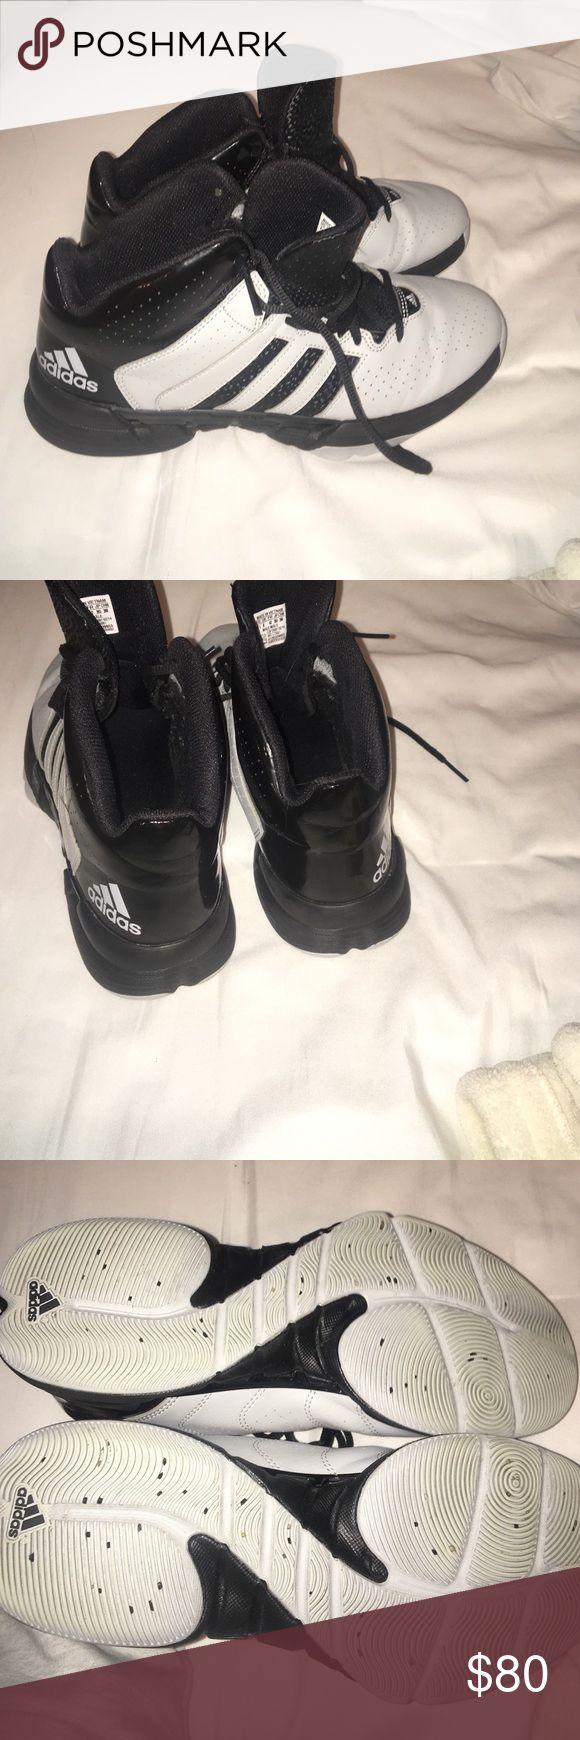 Adidas Basketball shoes Grey and black adidas basketball shoes worn once- amazing condition Adidas Shoes Athletic Shoes